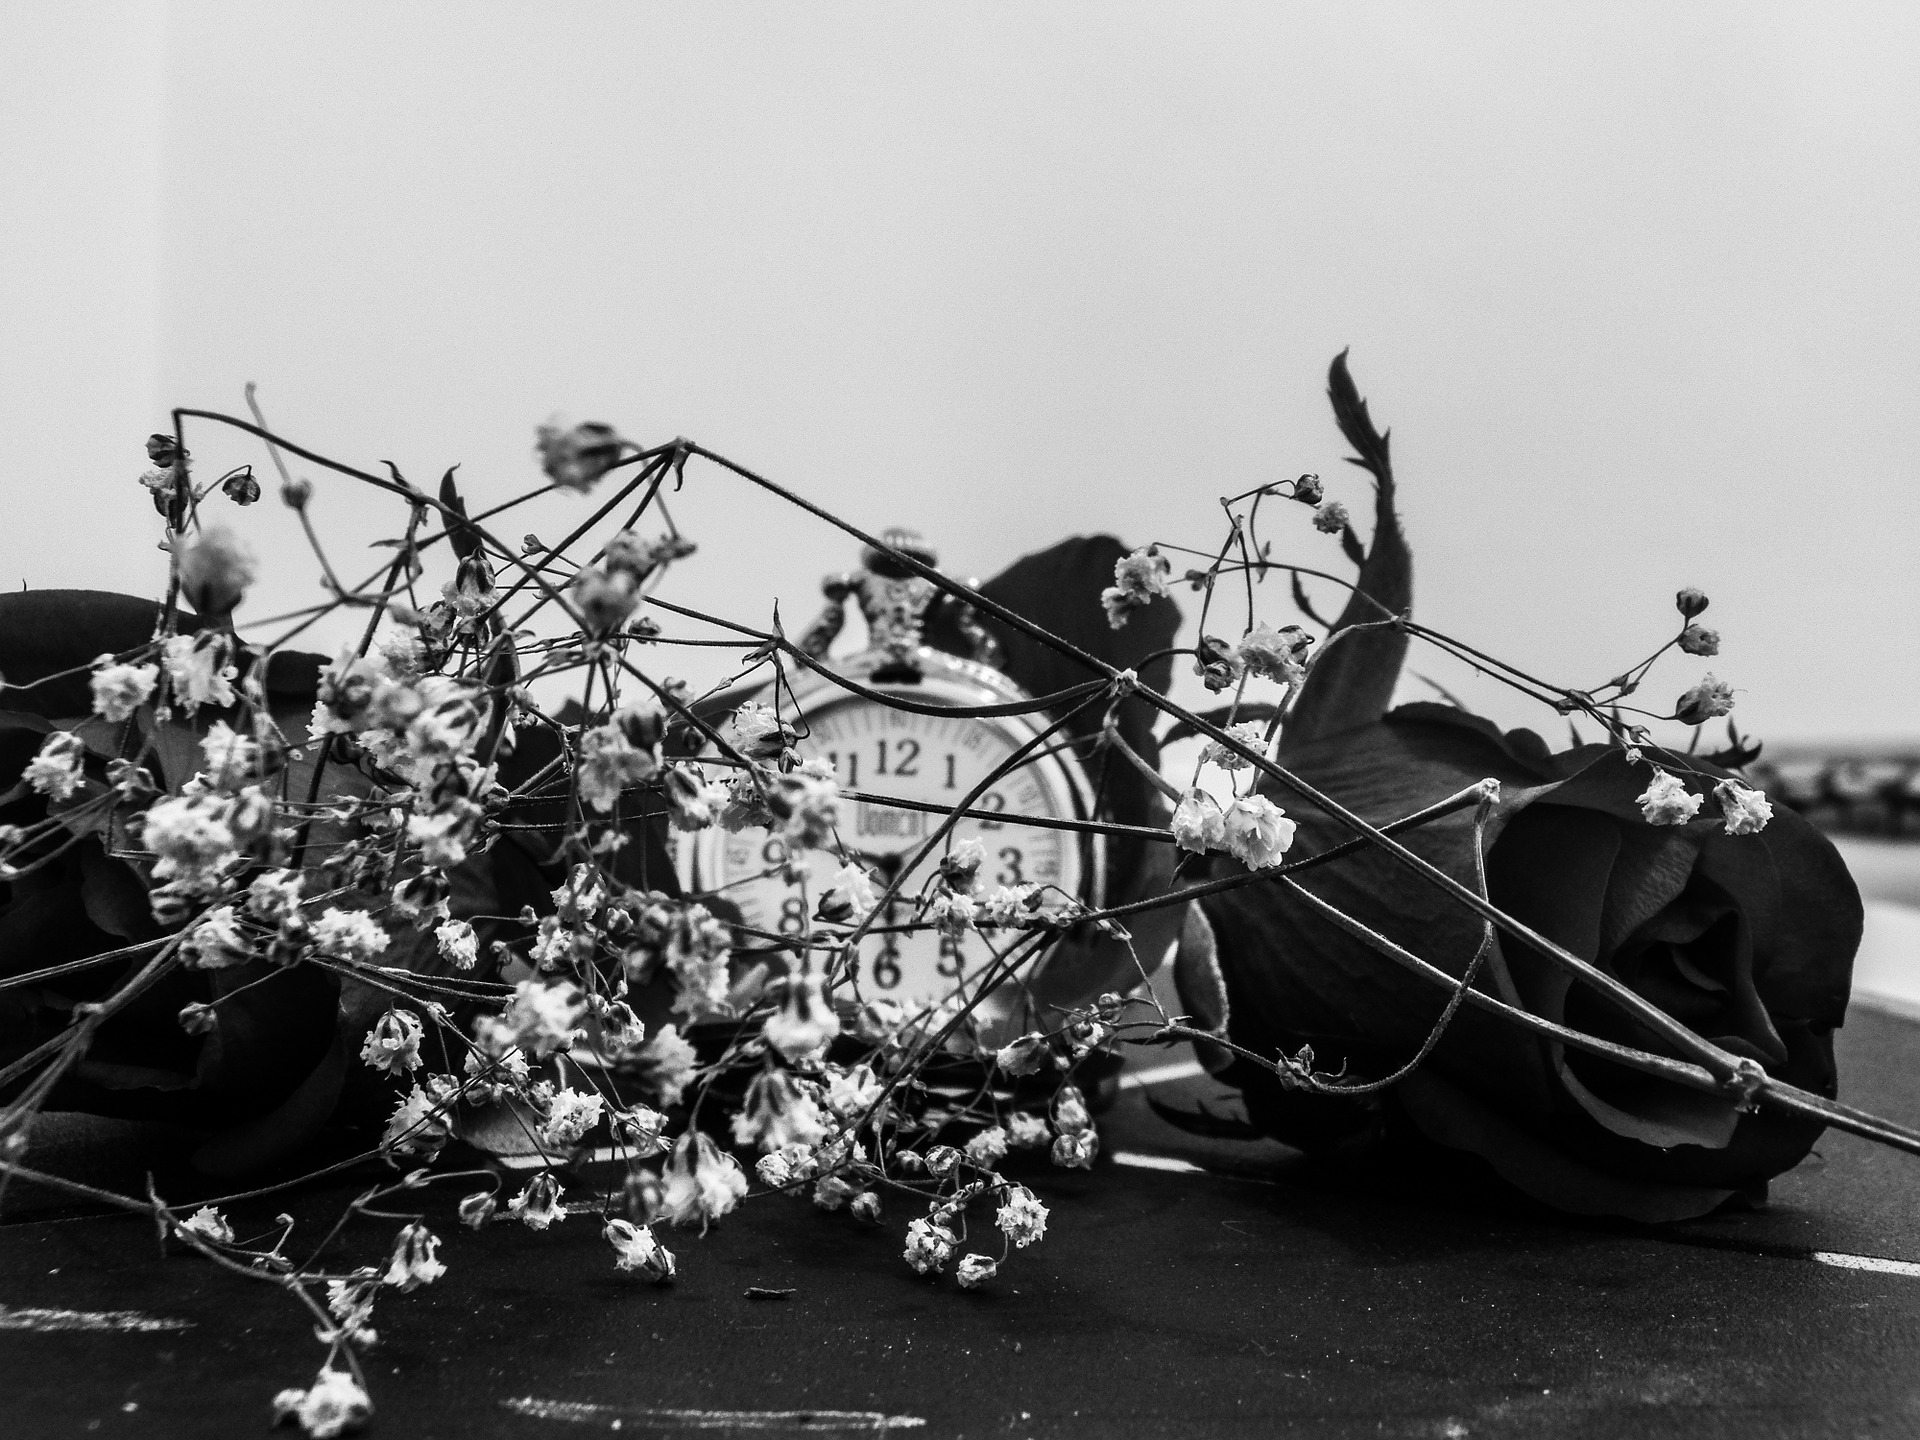 Black and white picture of a watch in between some dead flowers